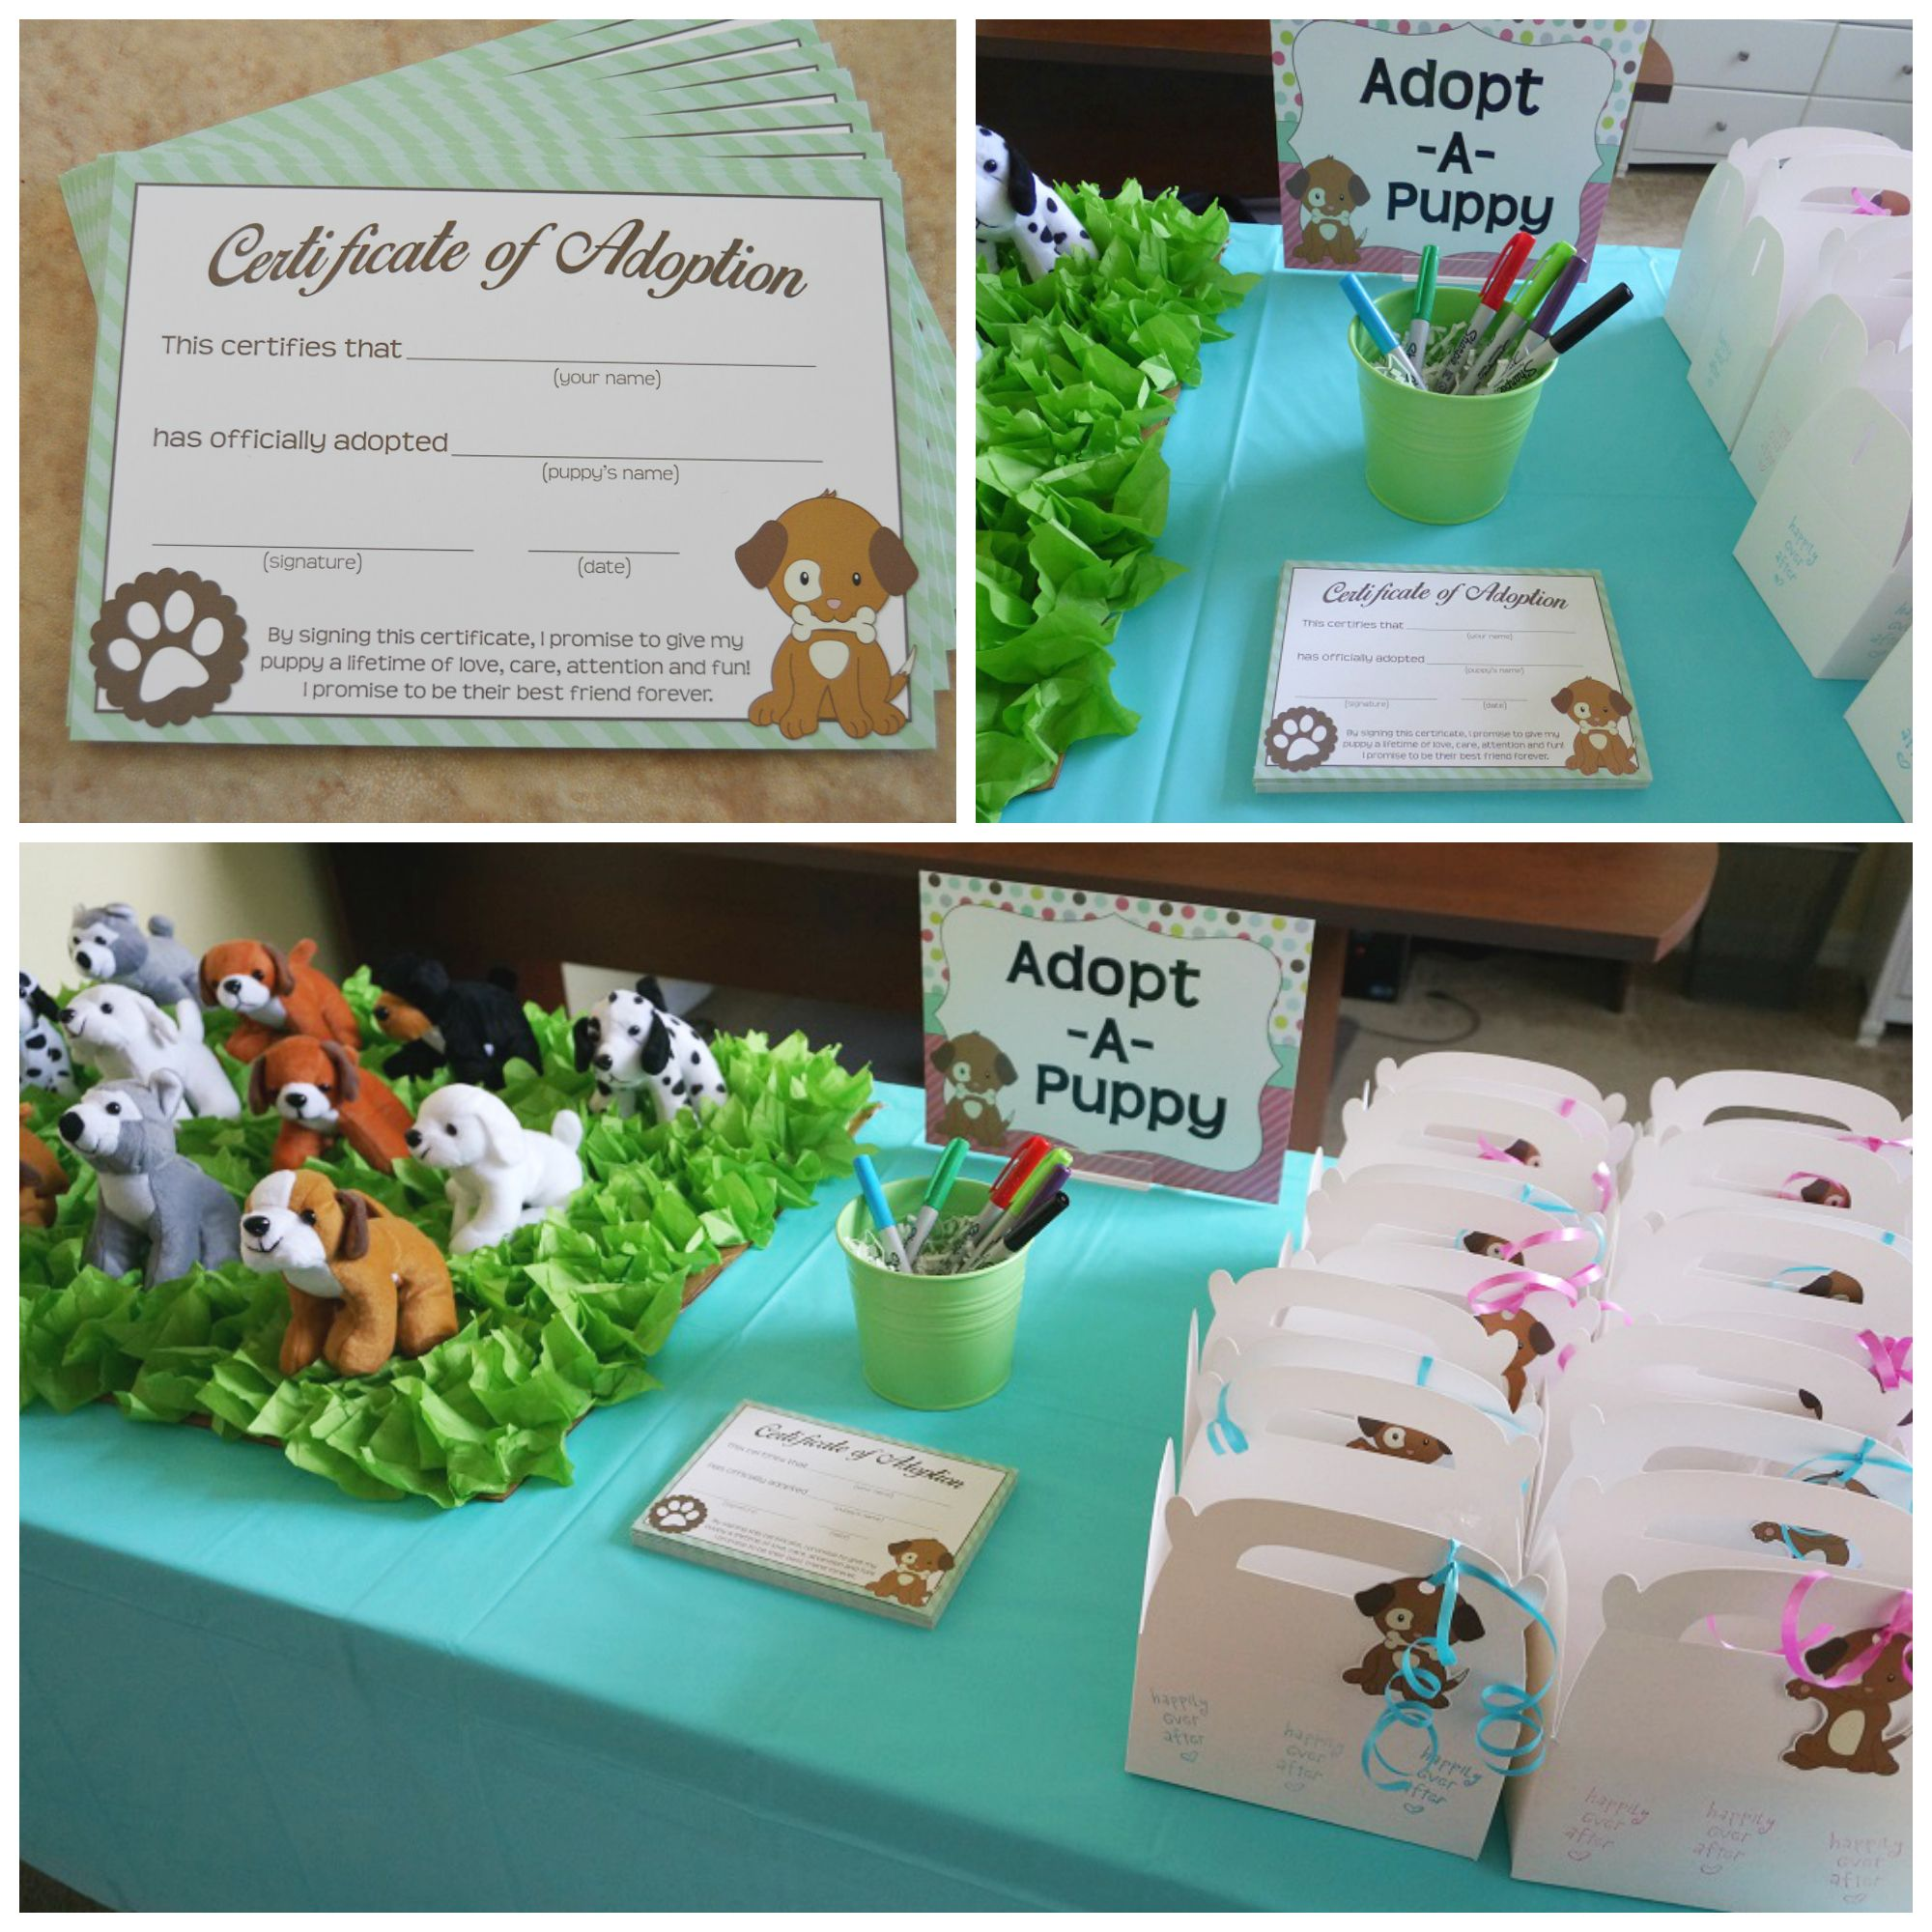 Puppy adoption adopt a puppy puppy party ideas httpsetsy puppy party adoption certificates by makeasceneprintables xflitez Gallery